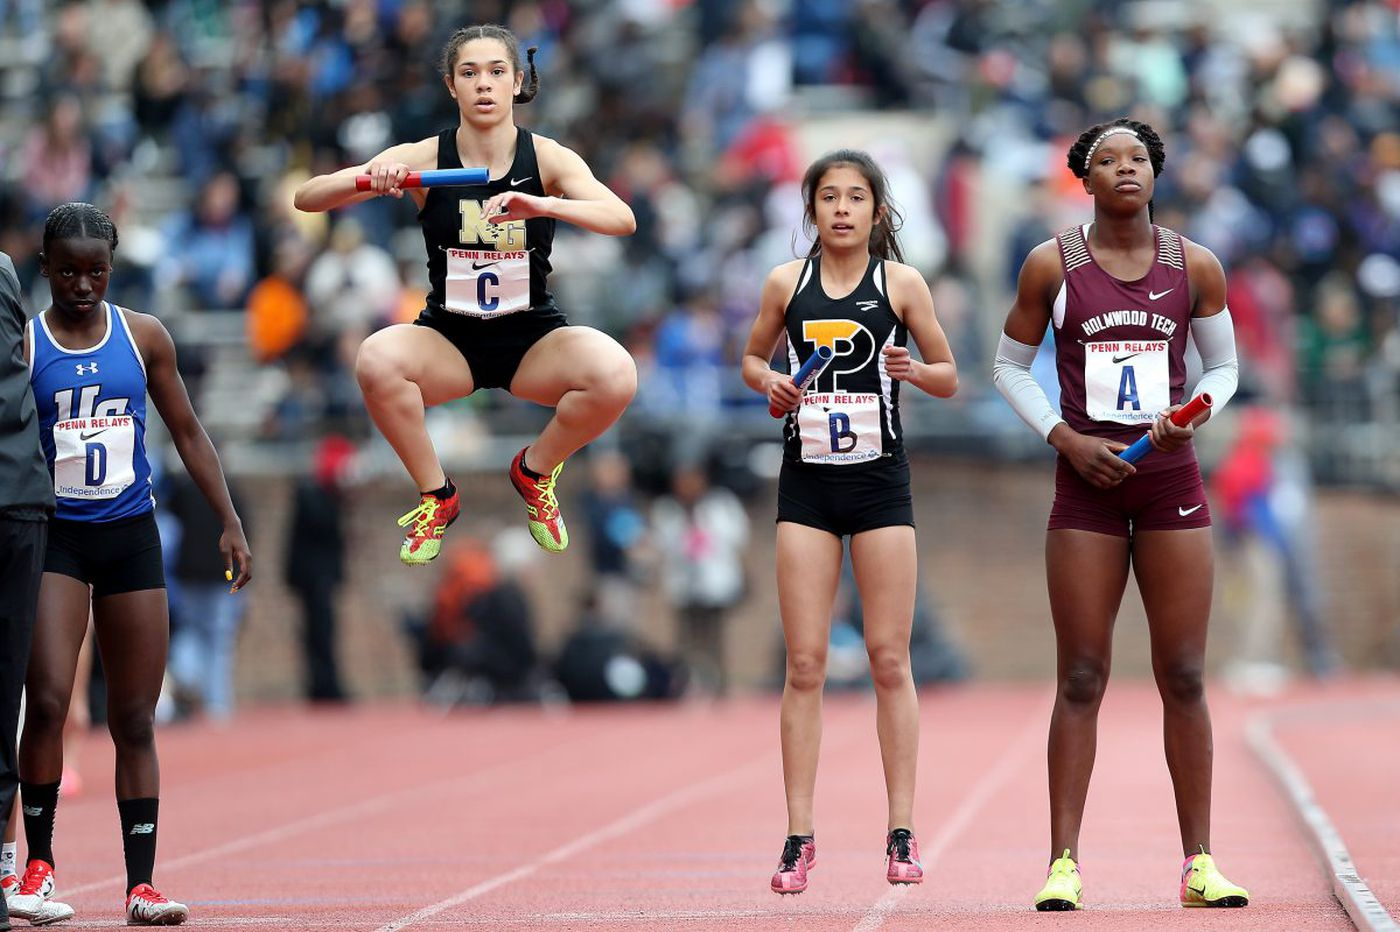 Neumann-Goretti girls set 4×800 school record at Penn Relays